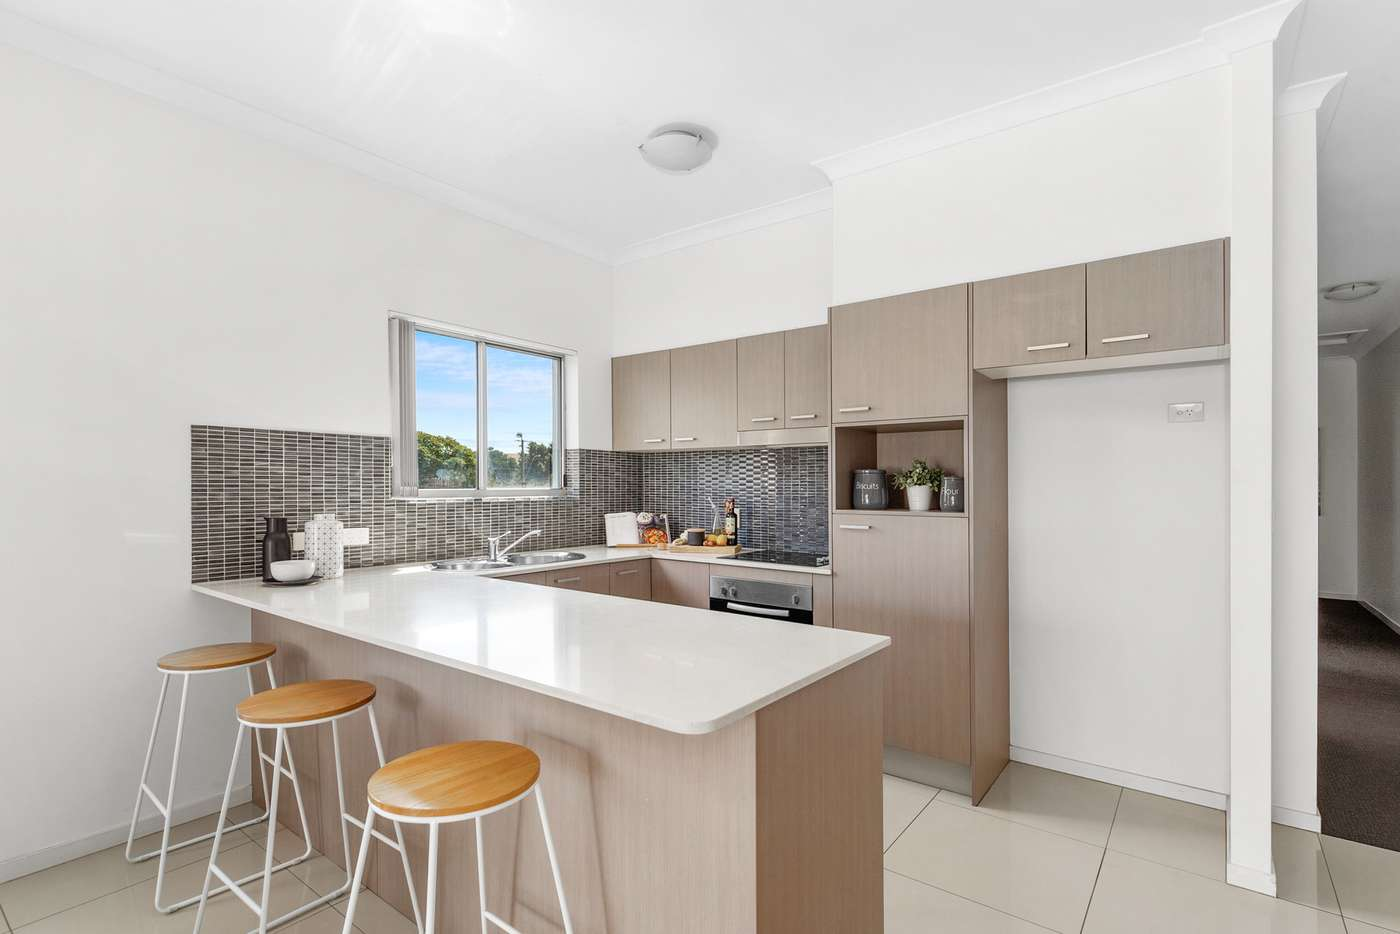 Sixth view of Homely apartment listing, 8/17 Donkin Street, Nundah QLD 4012